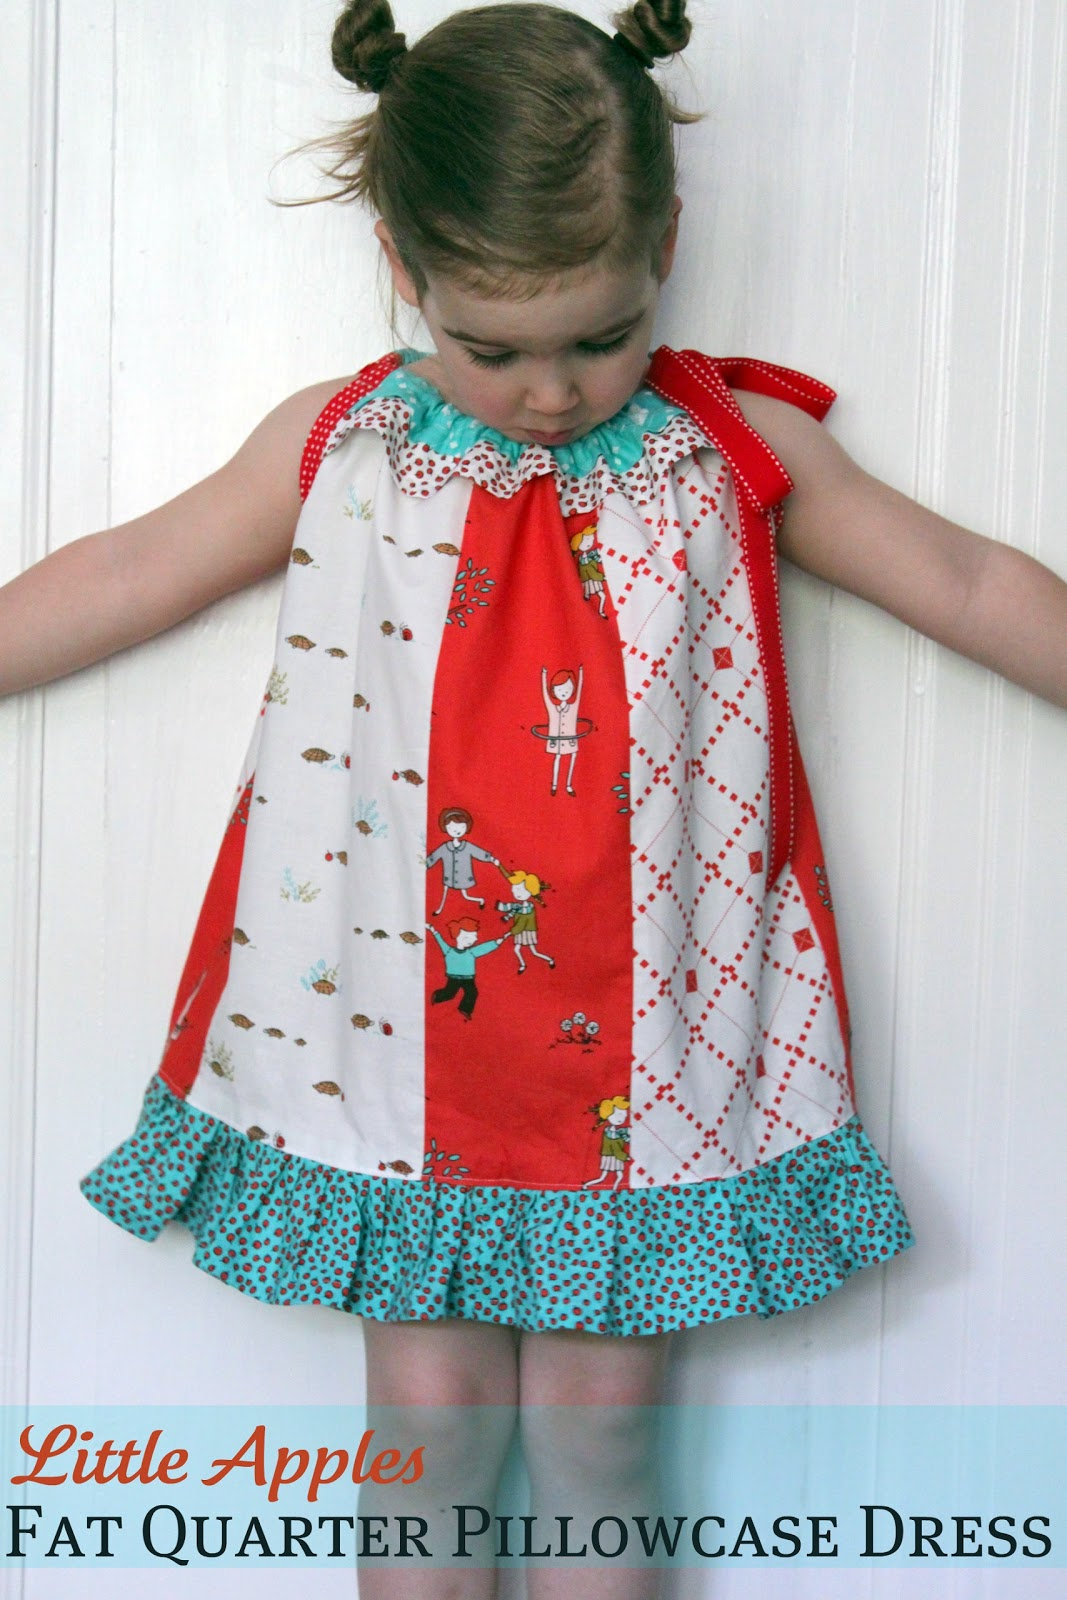 Pattern Remix: Little Apples Fat Quarter Pillowcase Dress - The ...